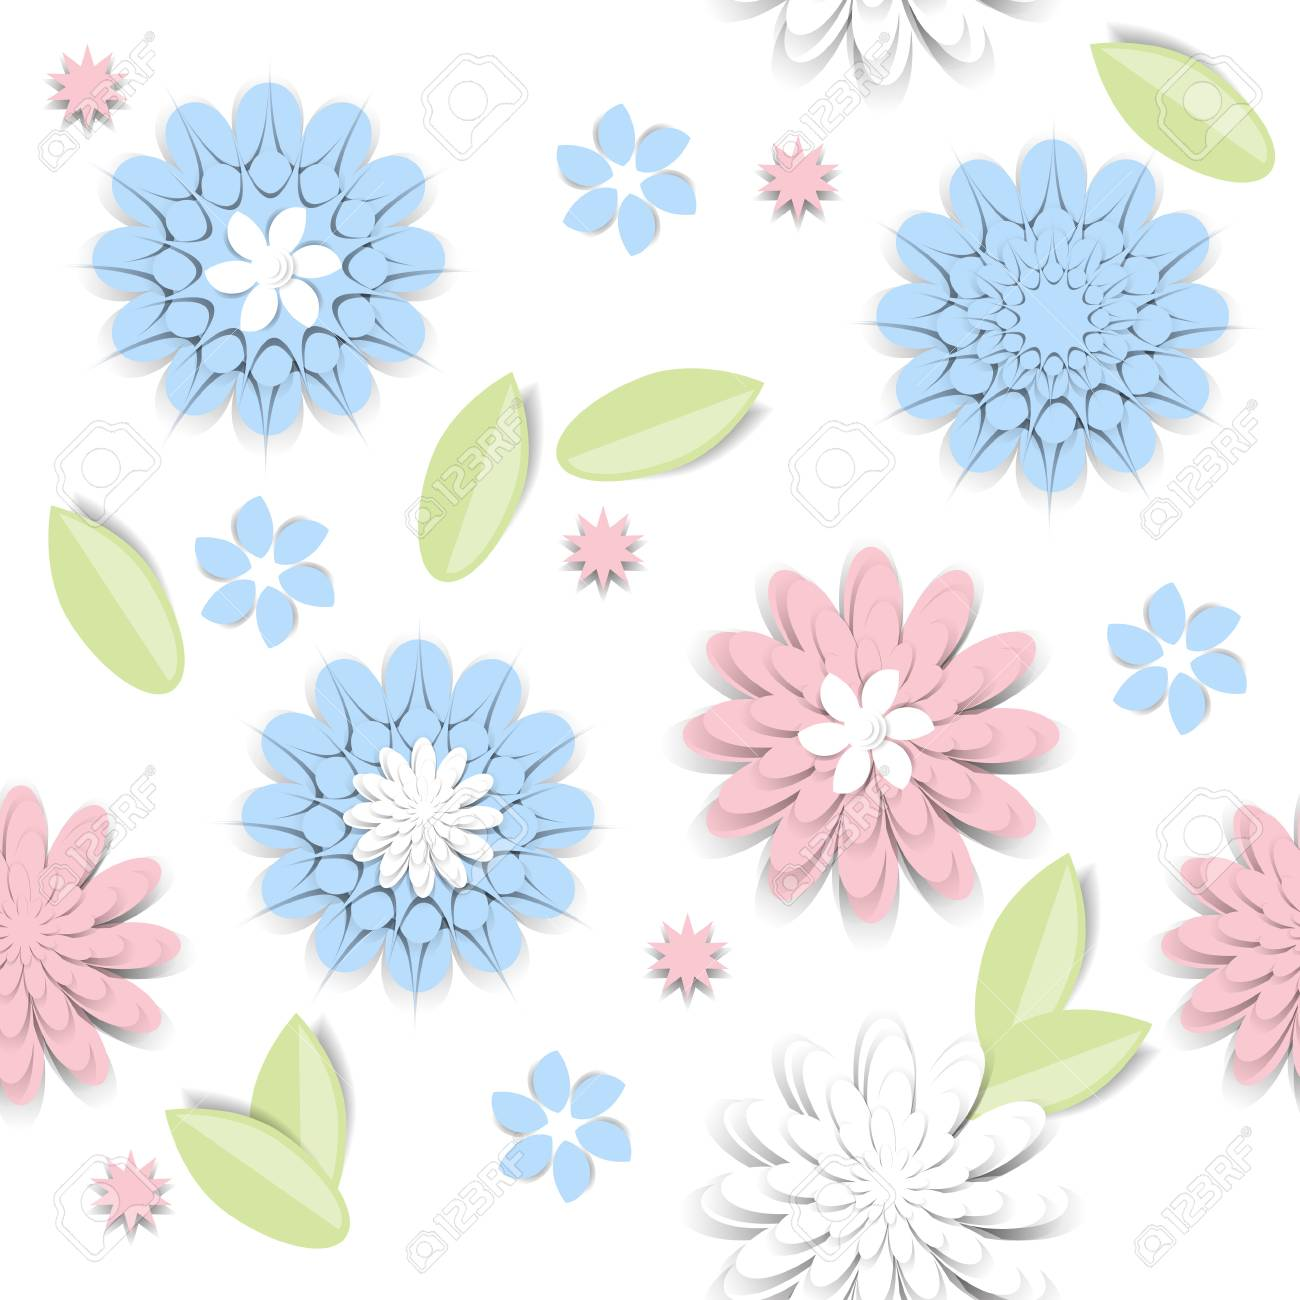 Seamless Pattern With Paper Cut Flowers In Pastel Colors Vector